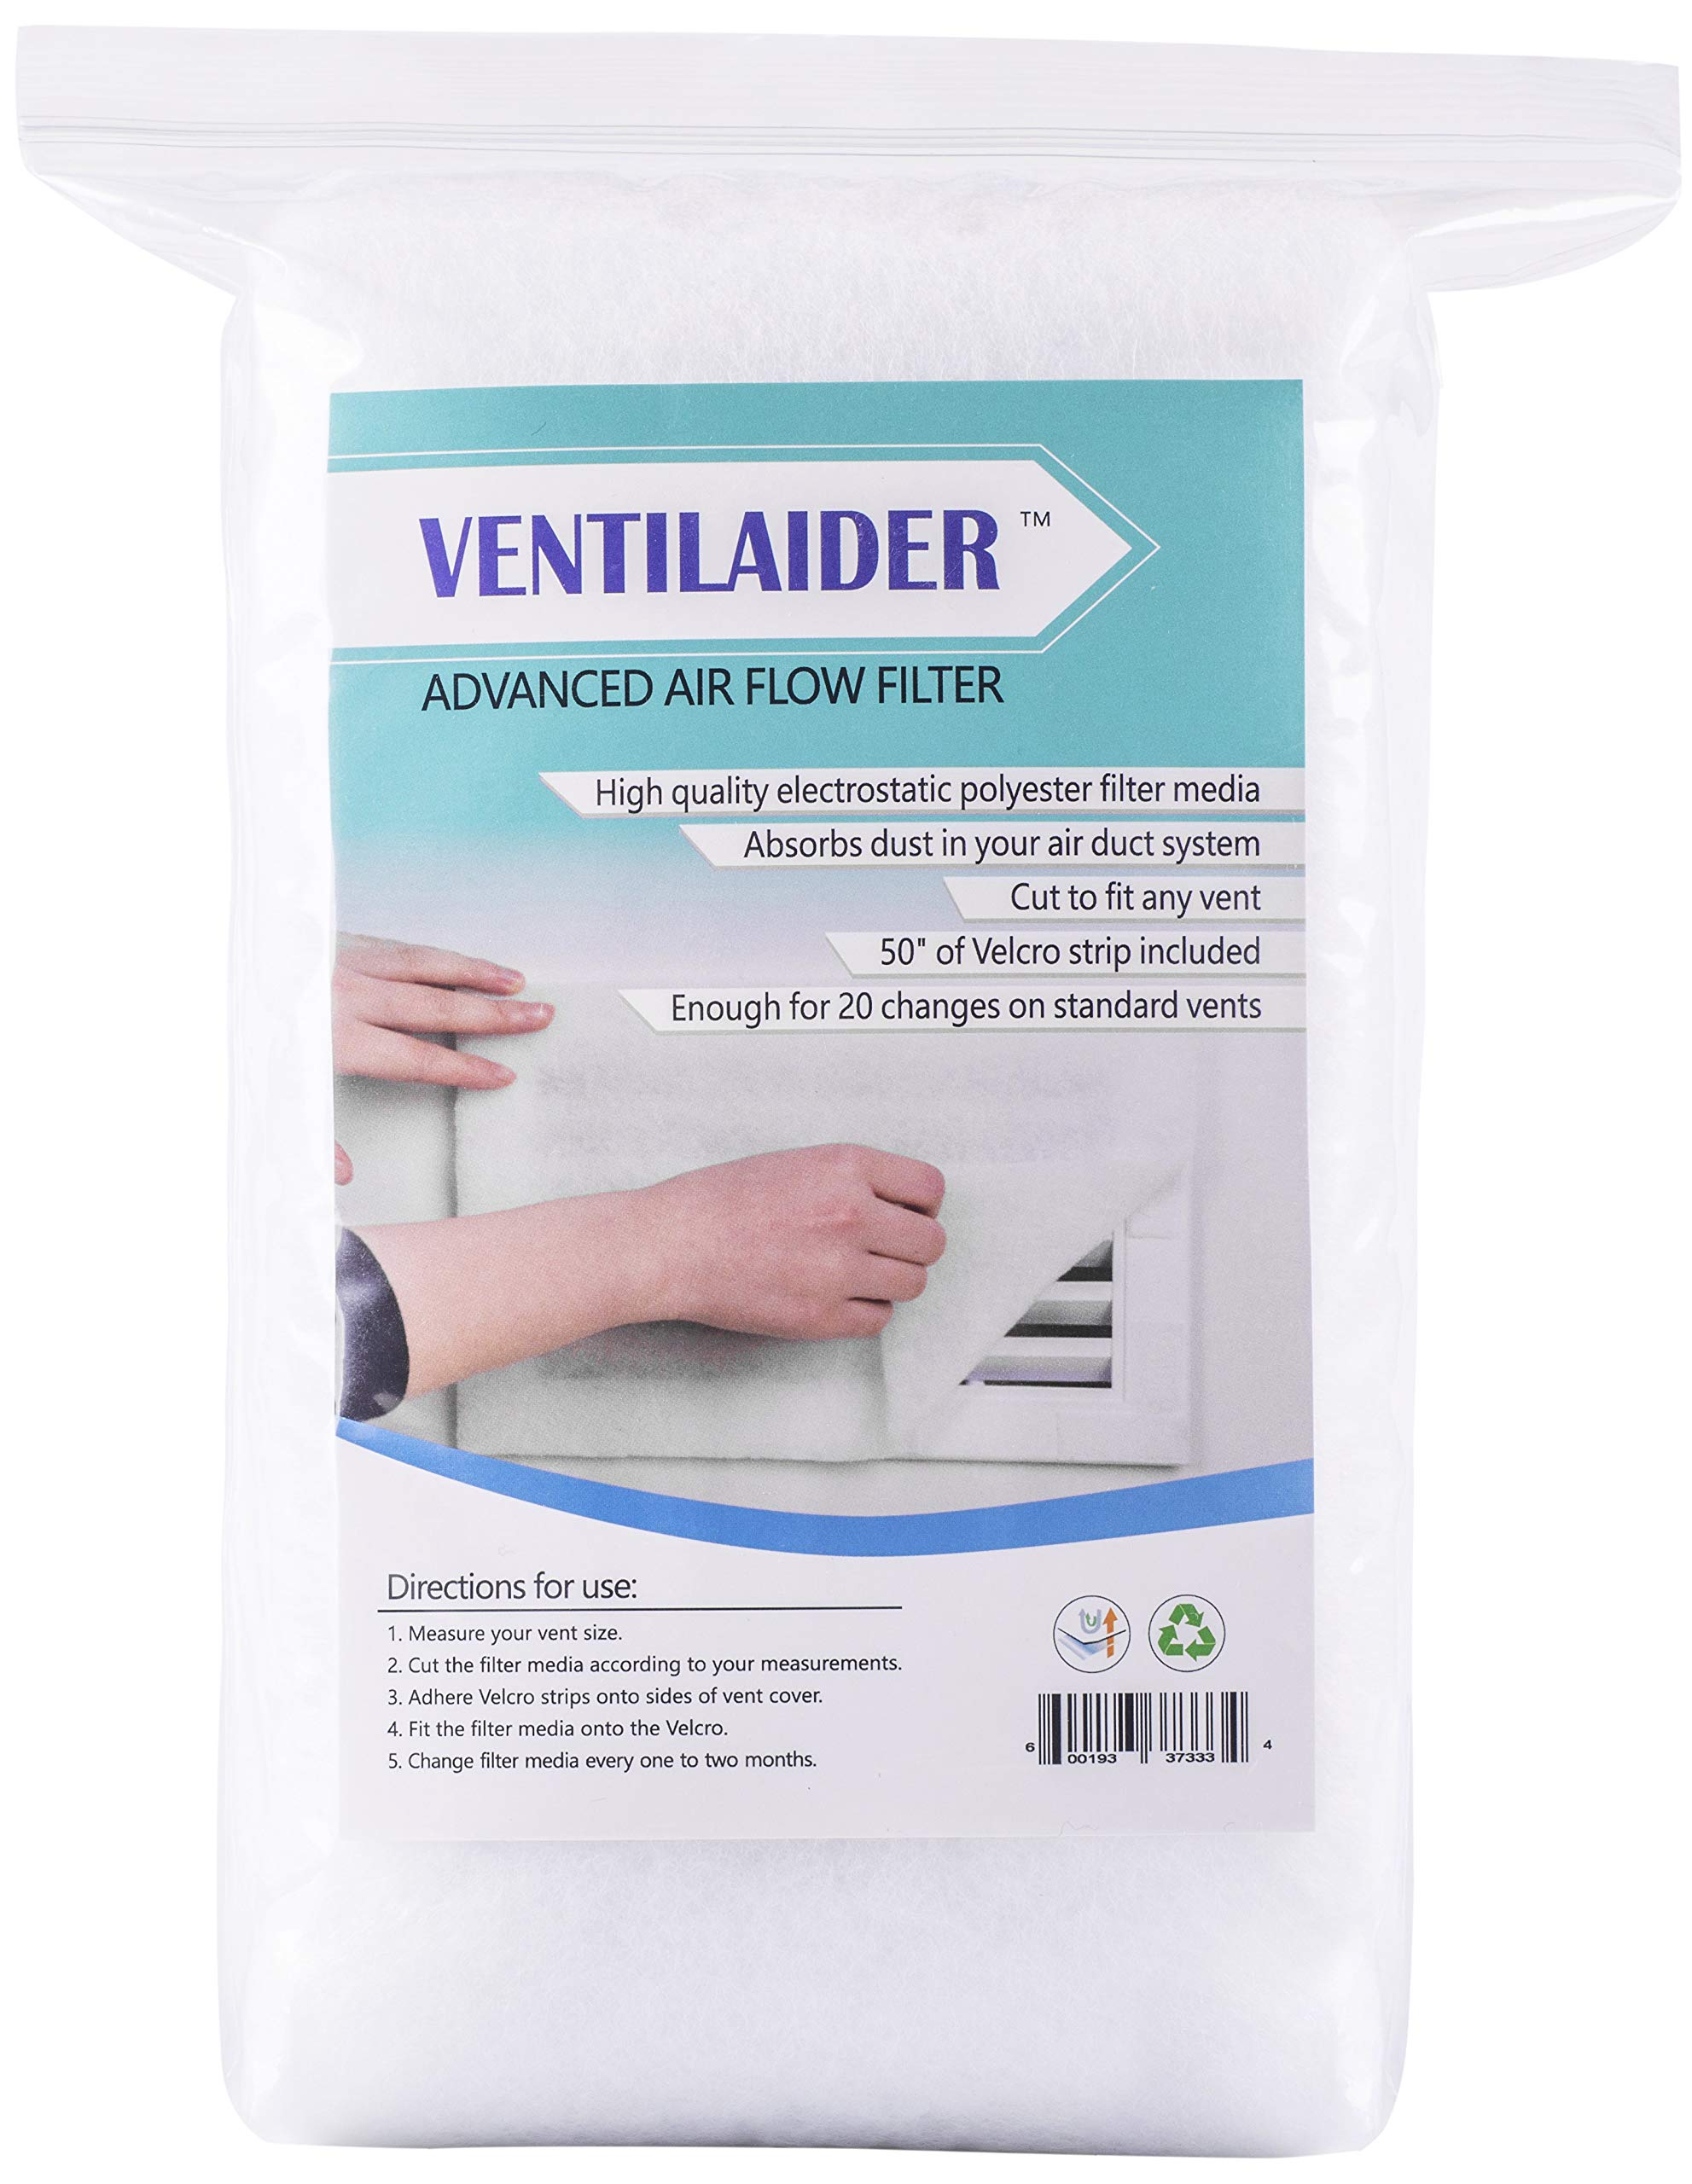 Ventilaider Complete Air Vent Register Filter Set Cut to Fit Any Size 16'' x 60'' & 50'' Velcro Tape, Electrostatic Fabric. Purifies Air, Helps Reduce Allergies from Dusty Ducts, AC Furnace System